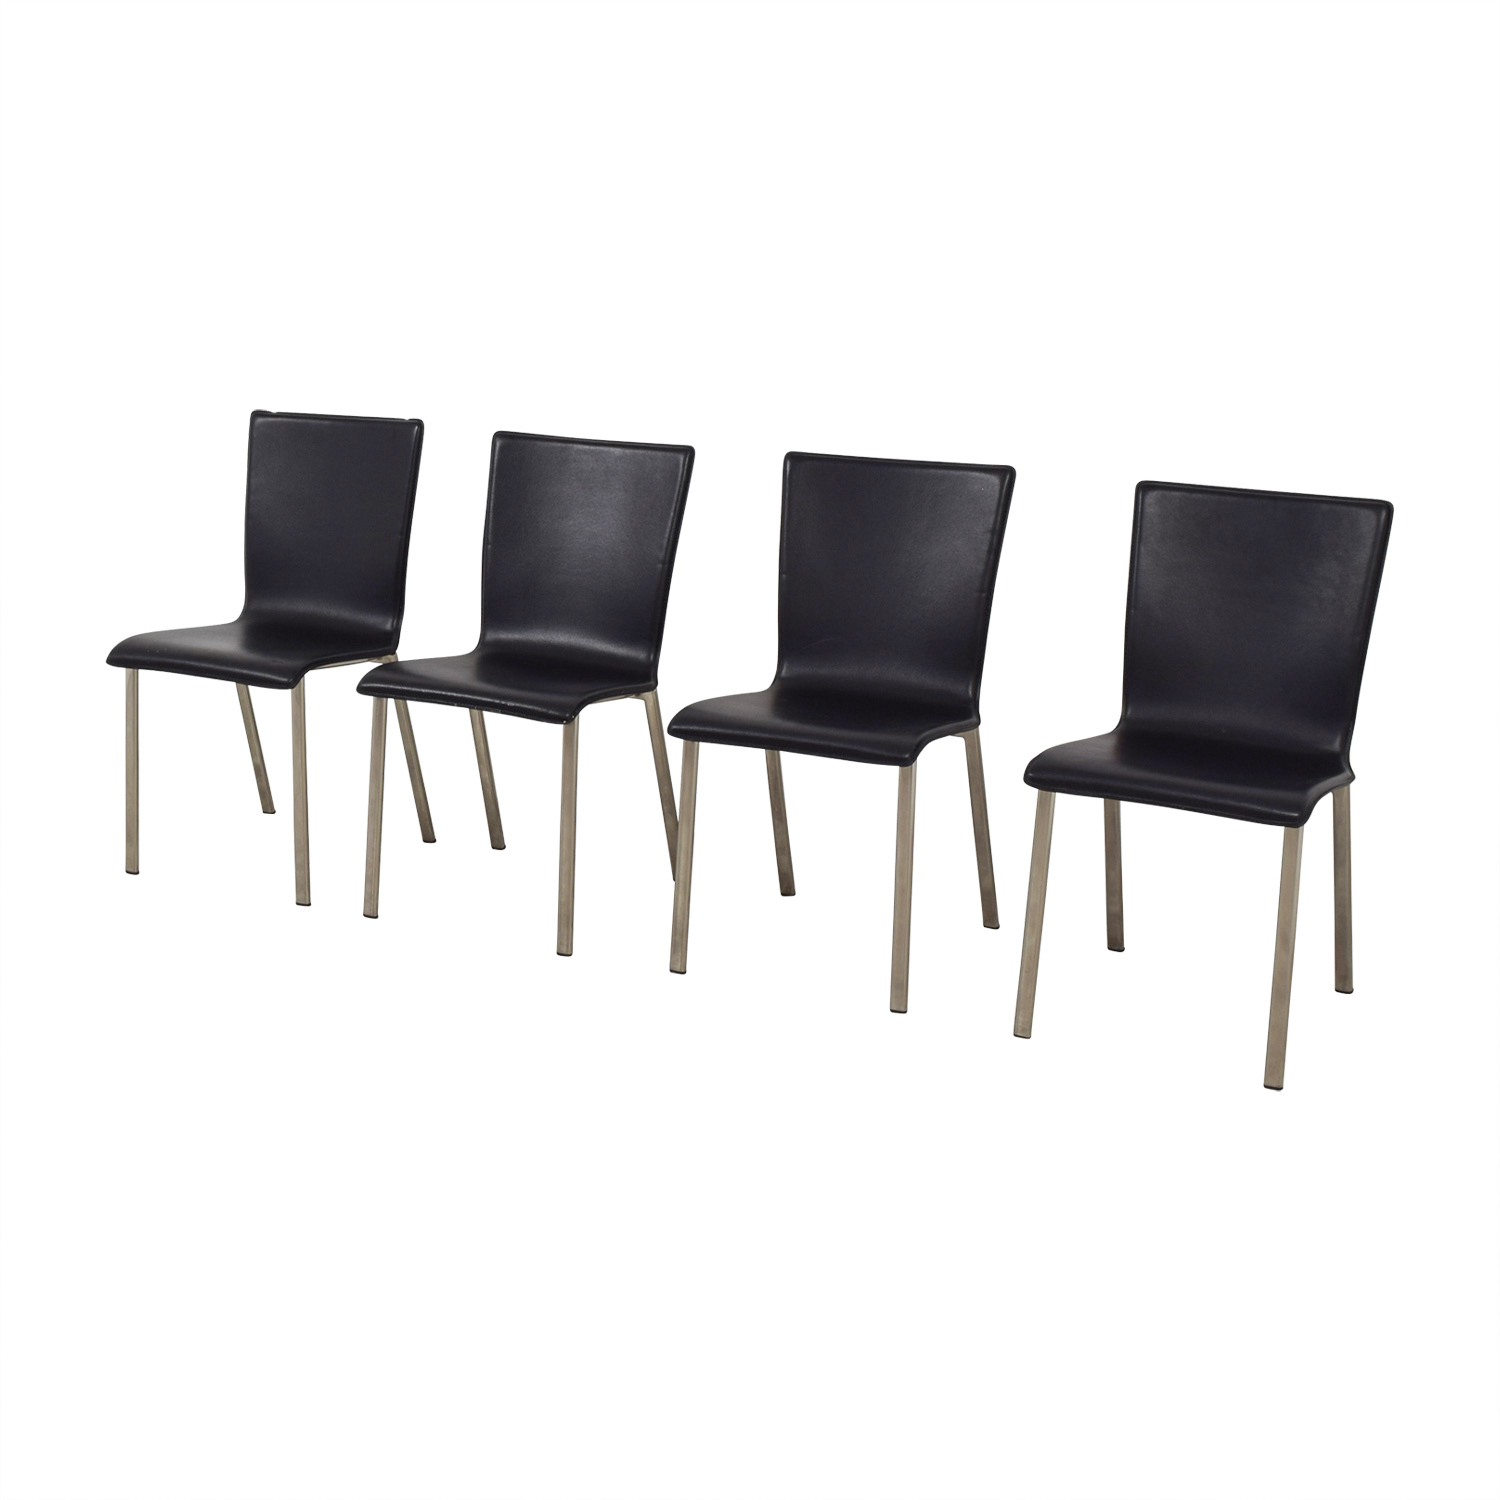 IKEA Black with Chrome Dining Chairs sale